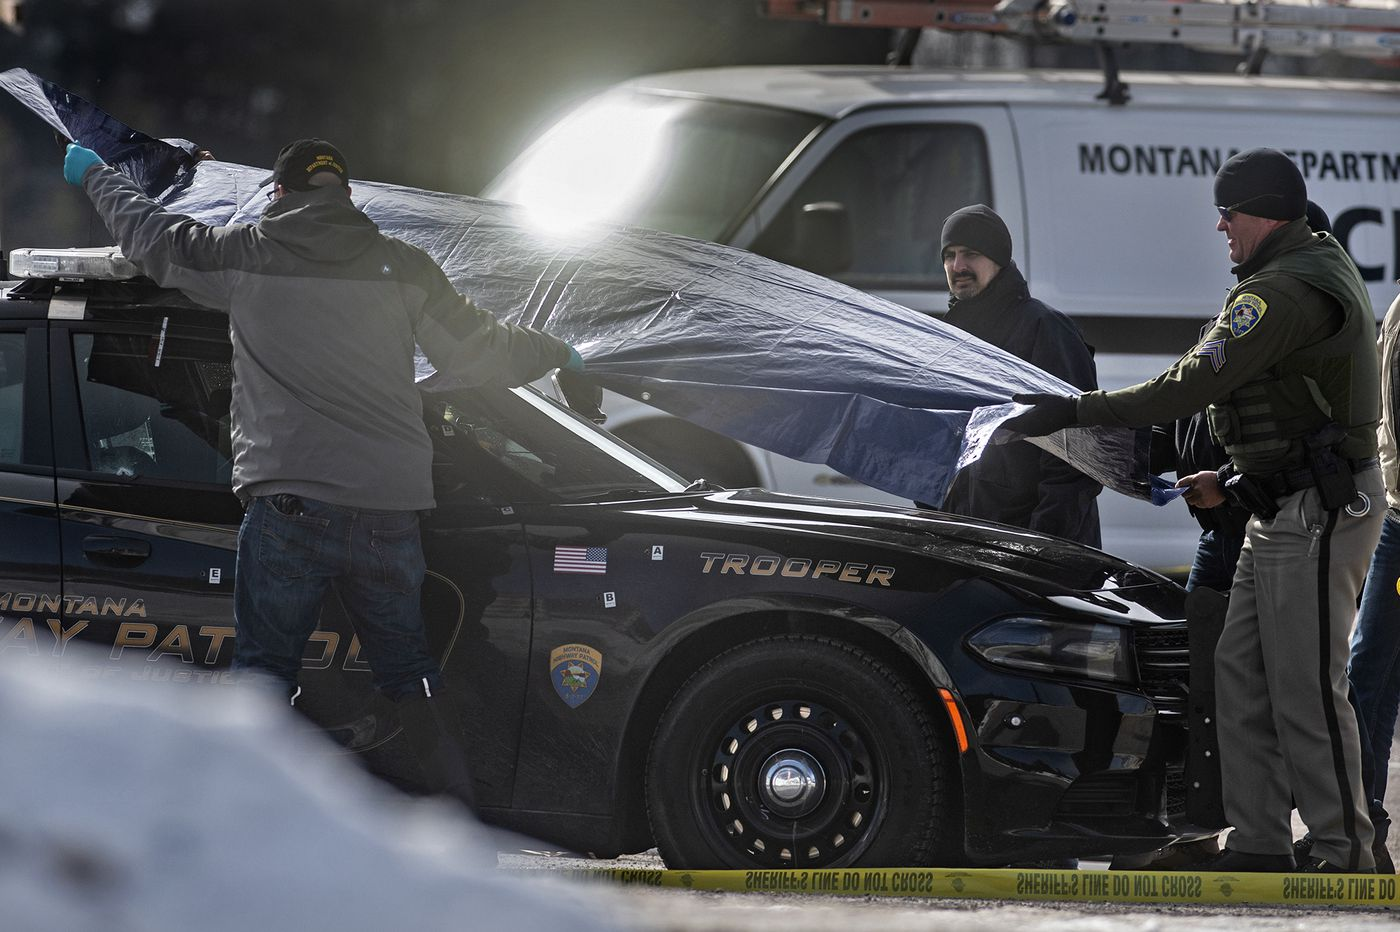 Montana shootings leave 1 dead, trooper and 2 others wounded